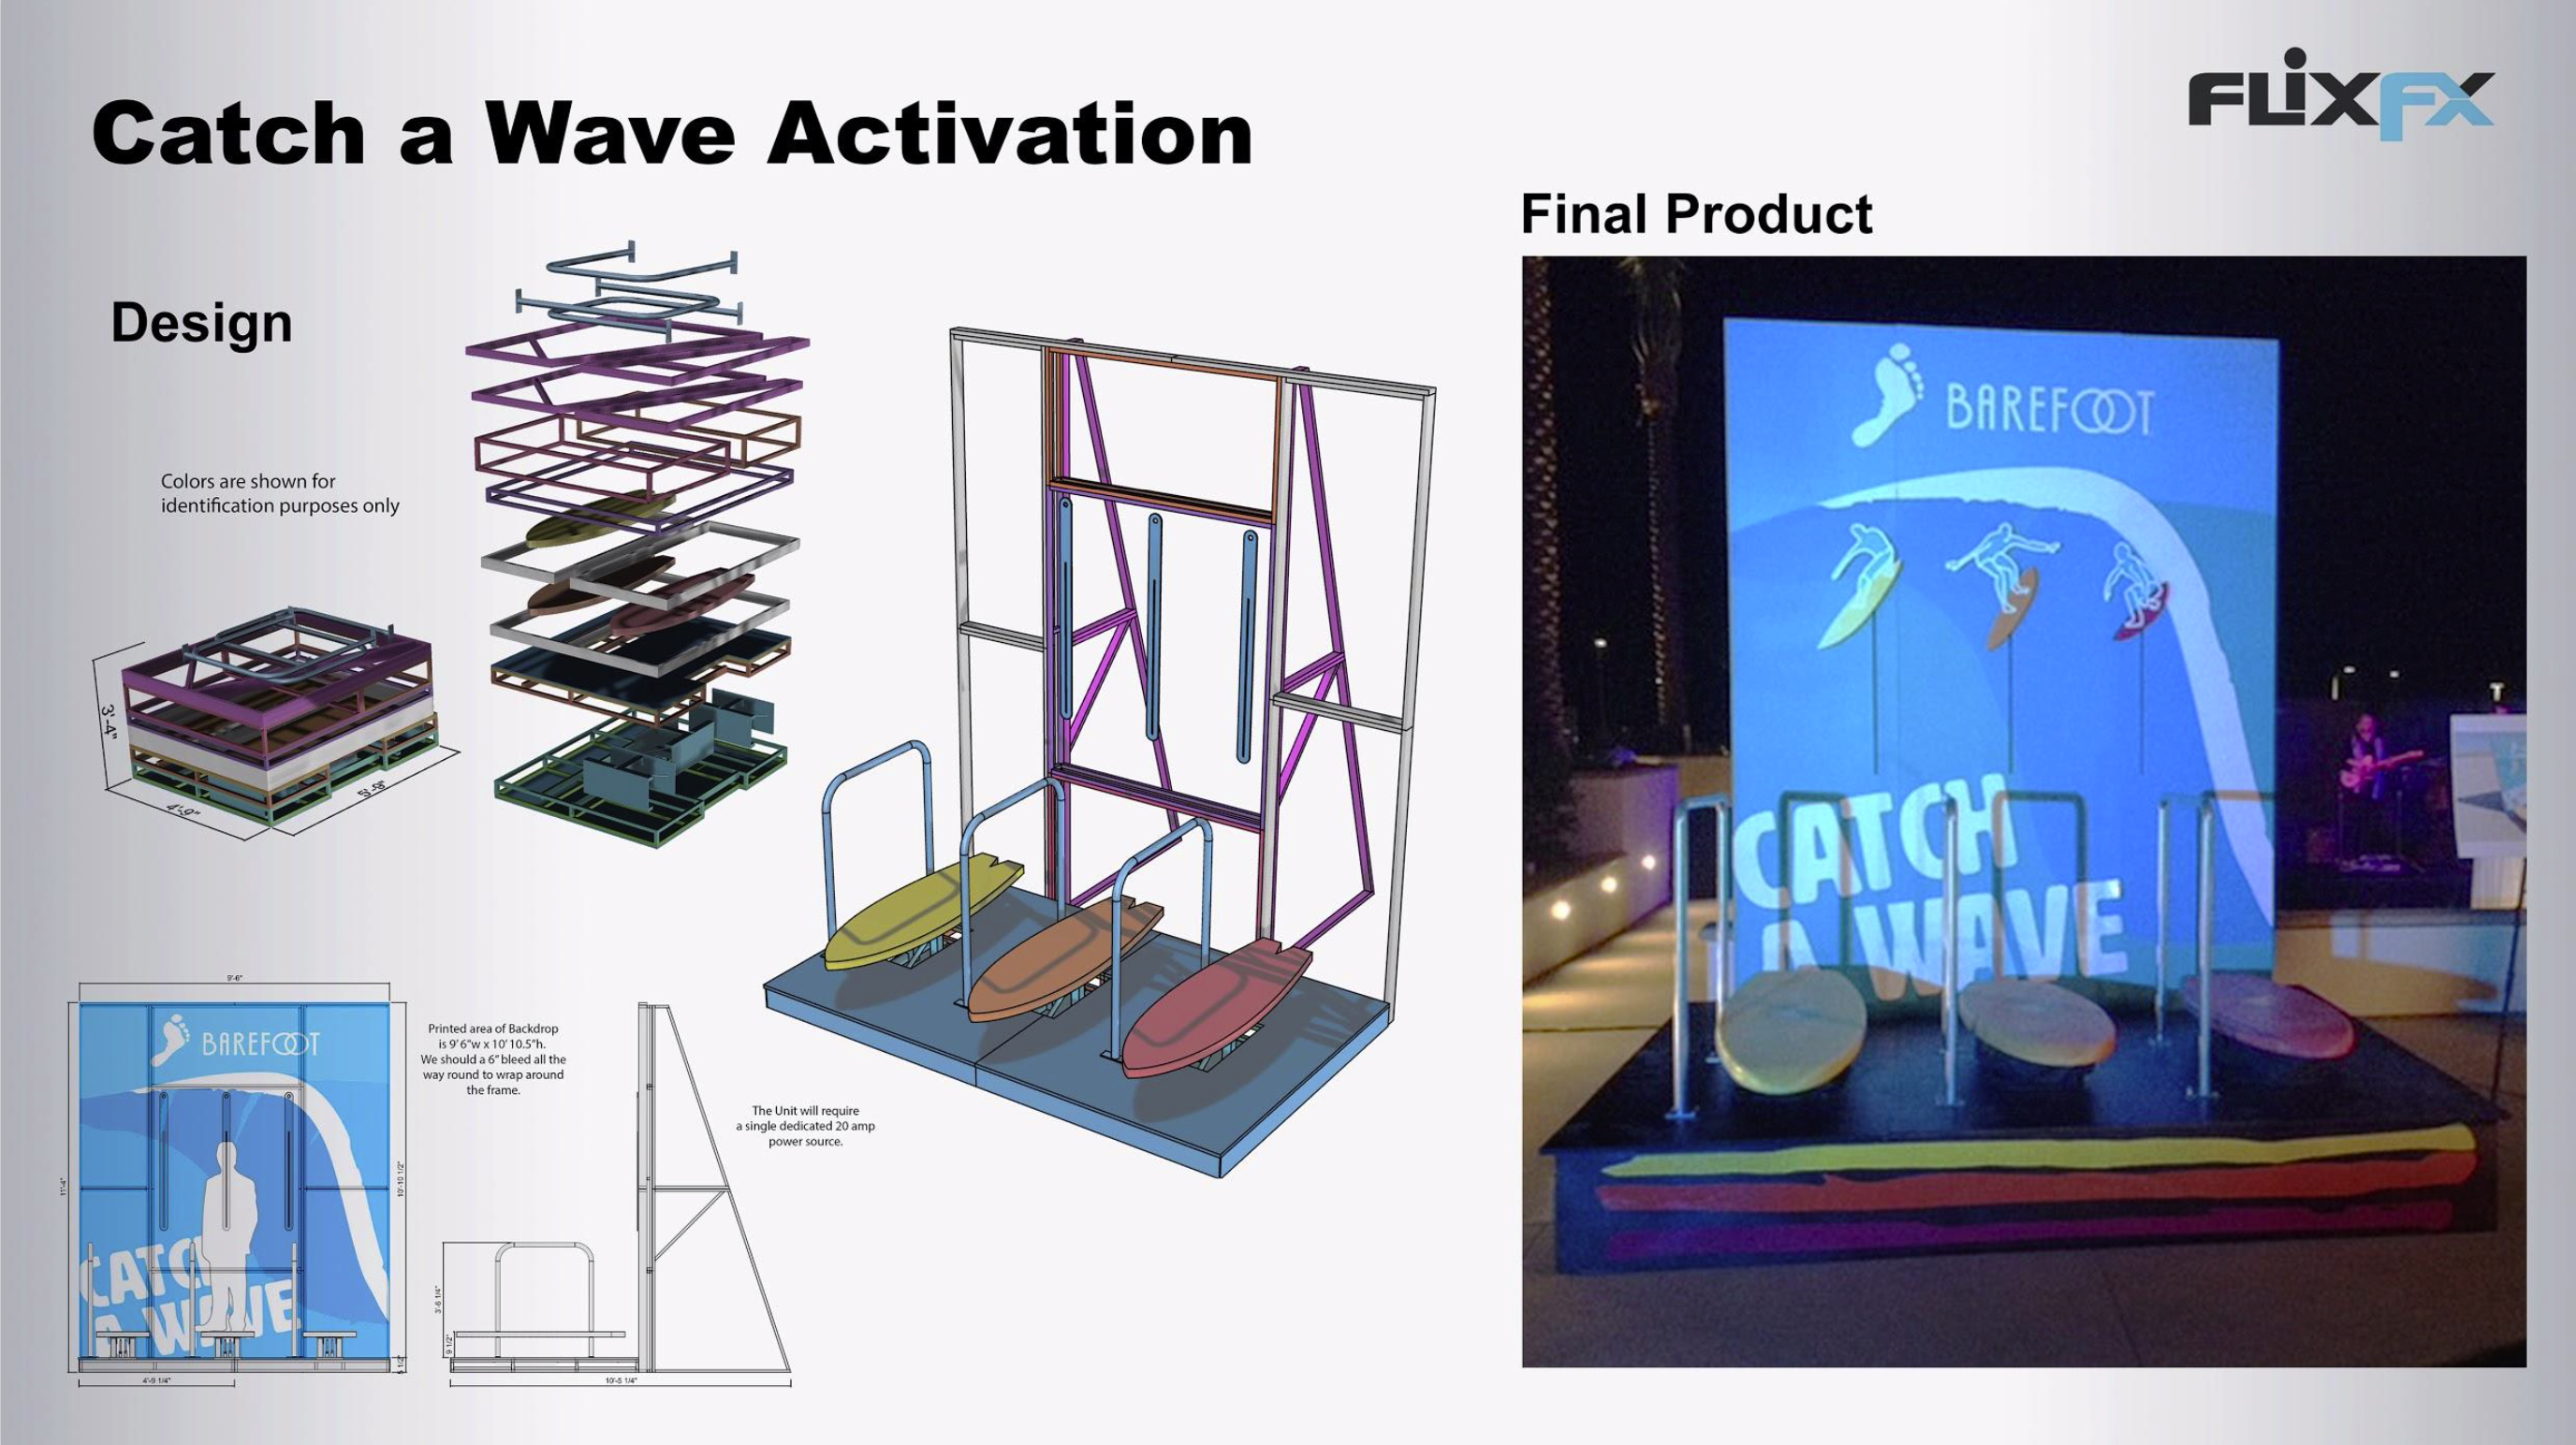 Barefoot Activation: Design, CNC Milling,Mechanical Fabrication, LED's, Electronics, Manual Machining, Plasma Cam, Metal Fabrication, Printing & Model Making.